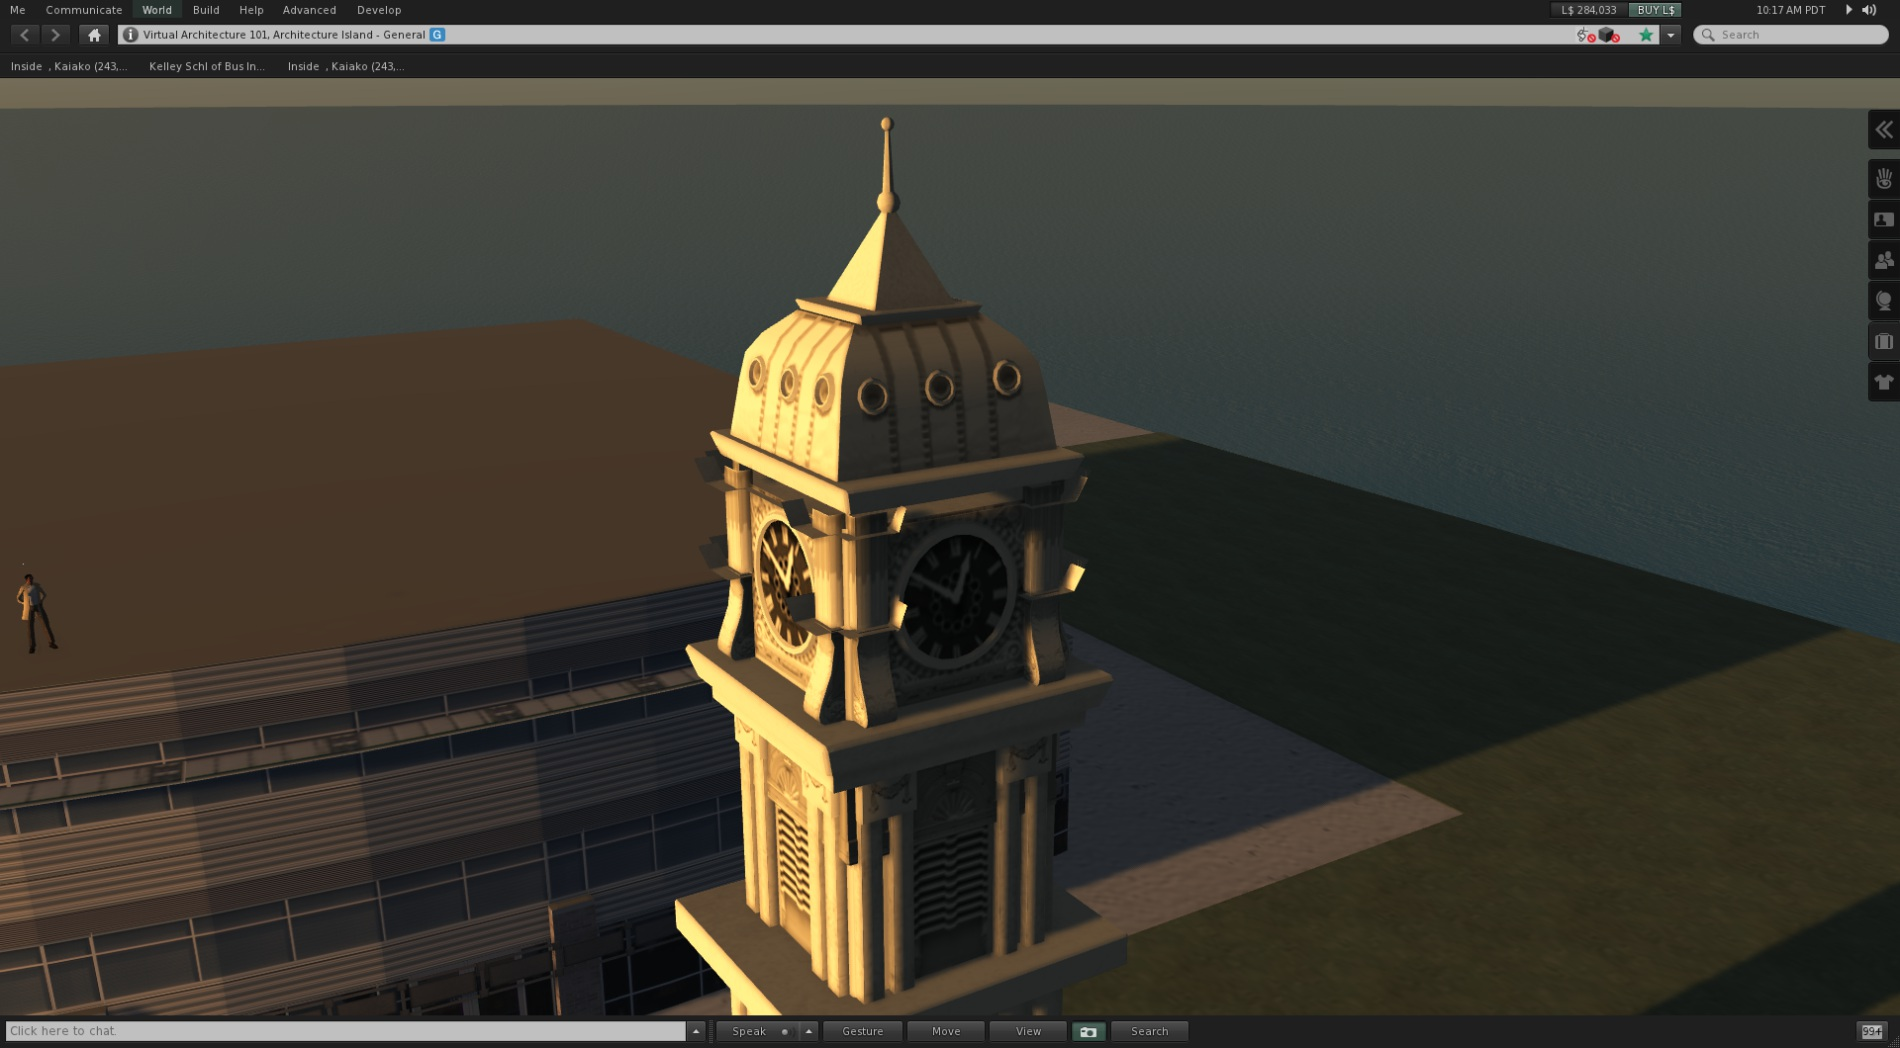 3D mesh imports now (finally!) possible in Second Life! No